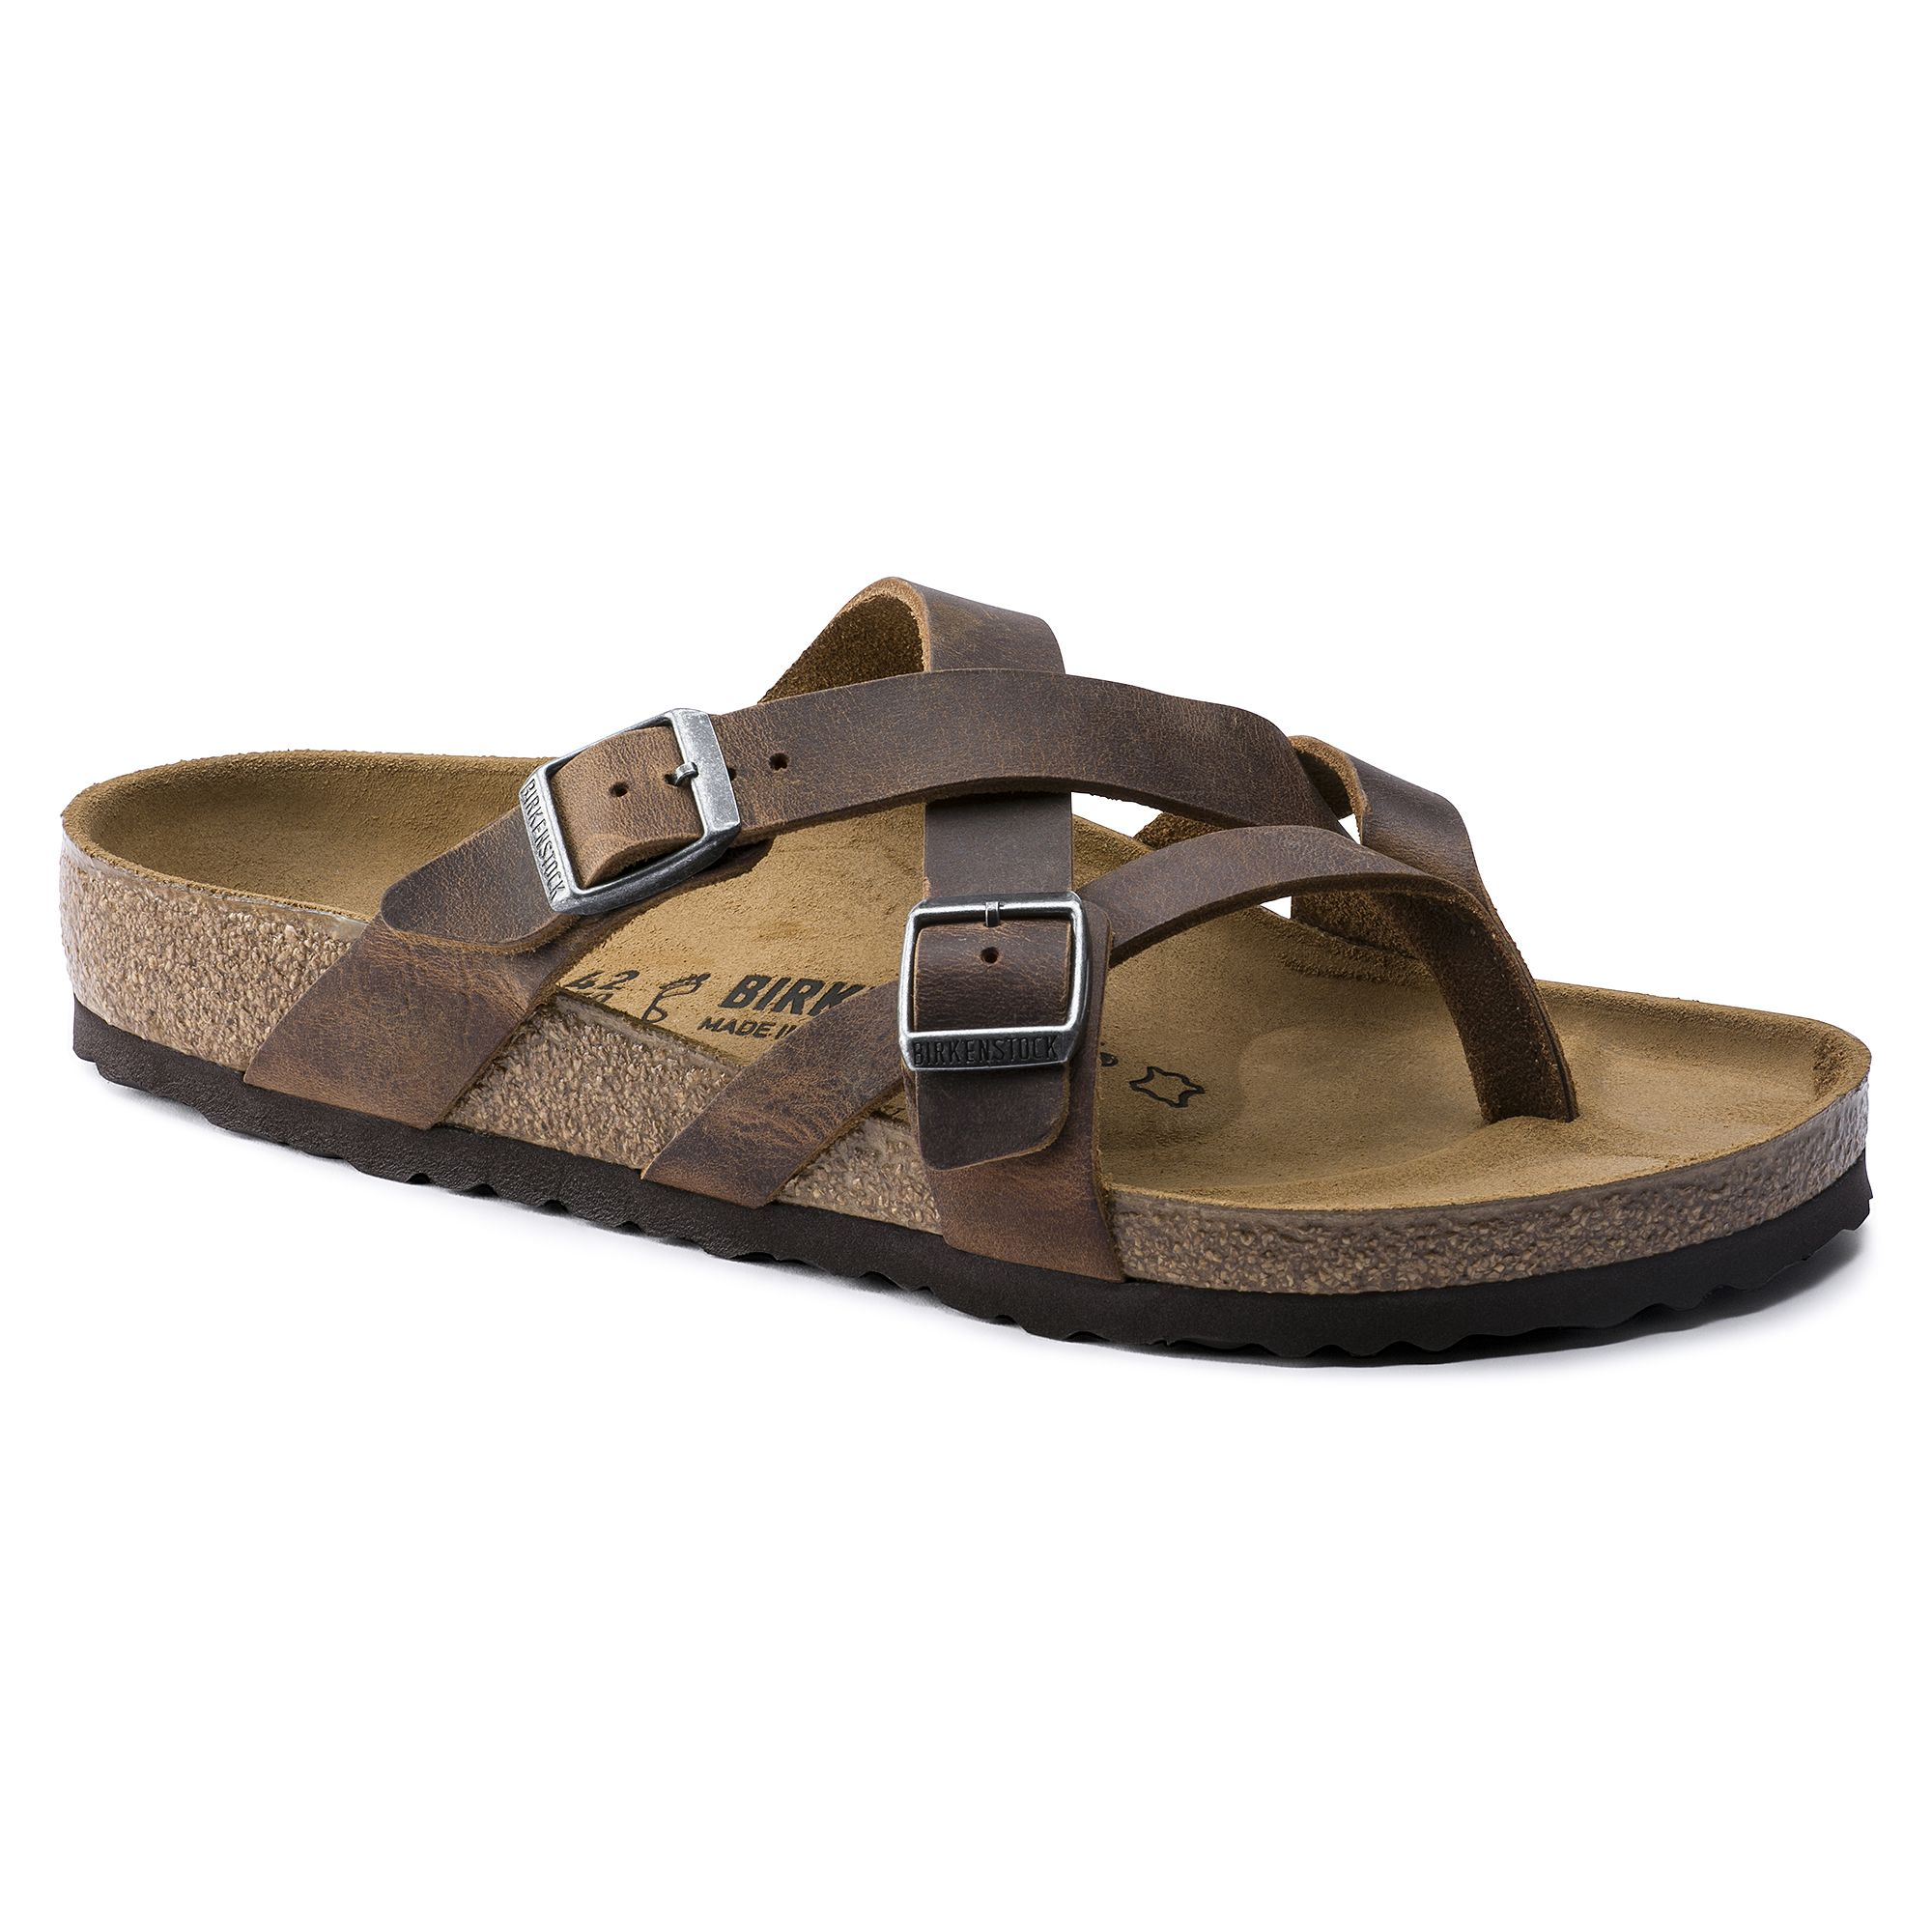 dc5458c0681 BIRKENSTOCK Temara Natural Leather Camberra Old Black in all sizes ✓ Buy  directly from the manufacturer online ✓ All fashion trends from Birkenstock